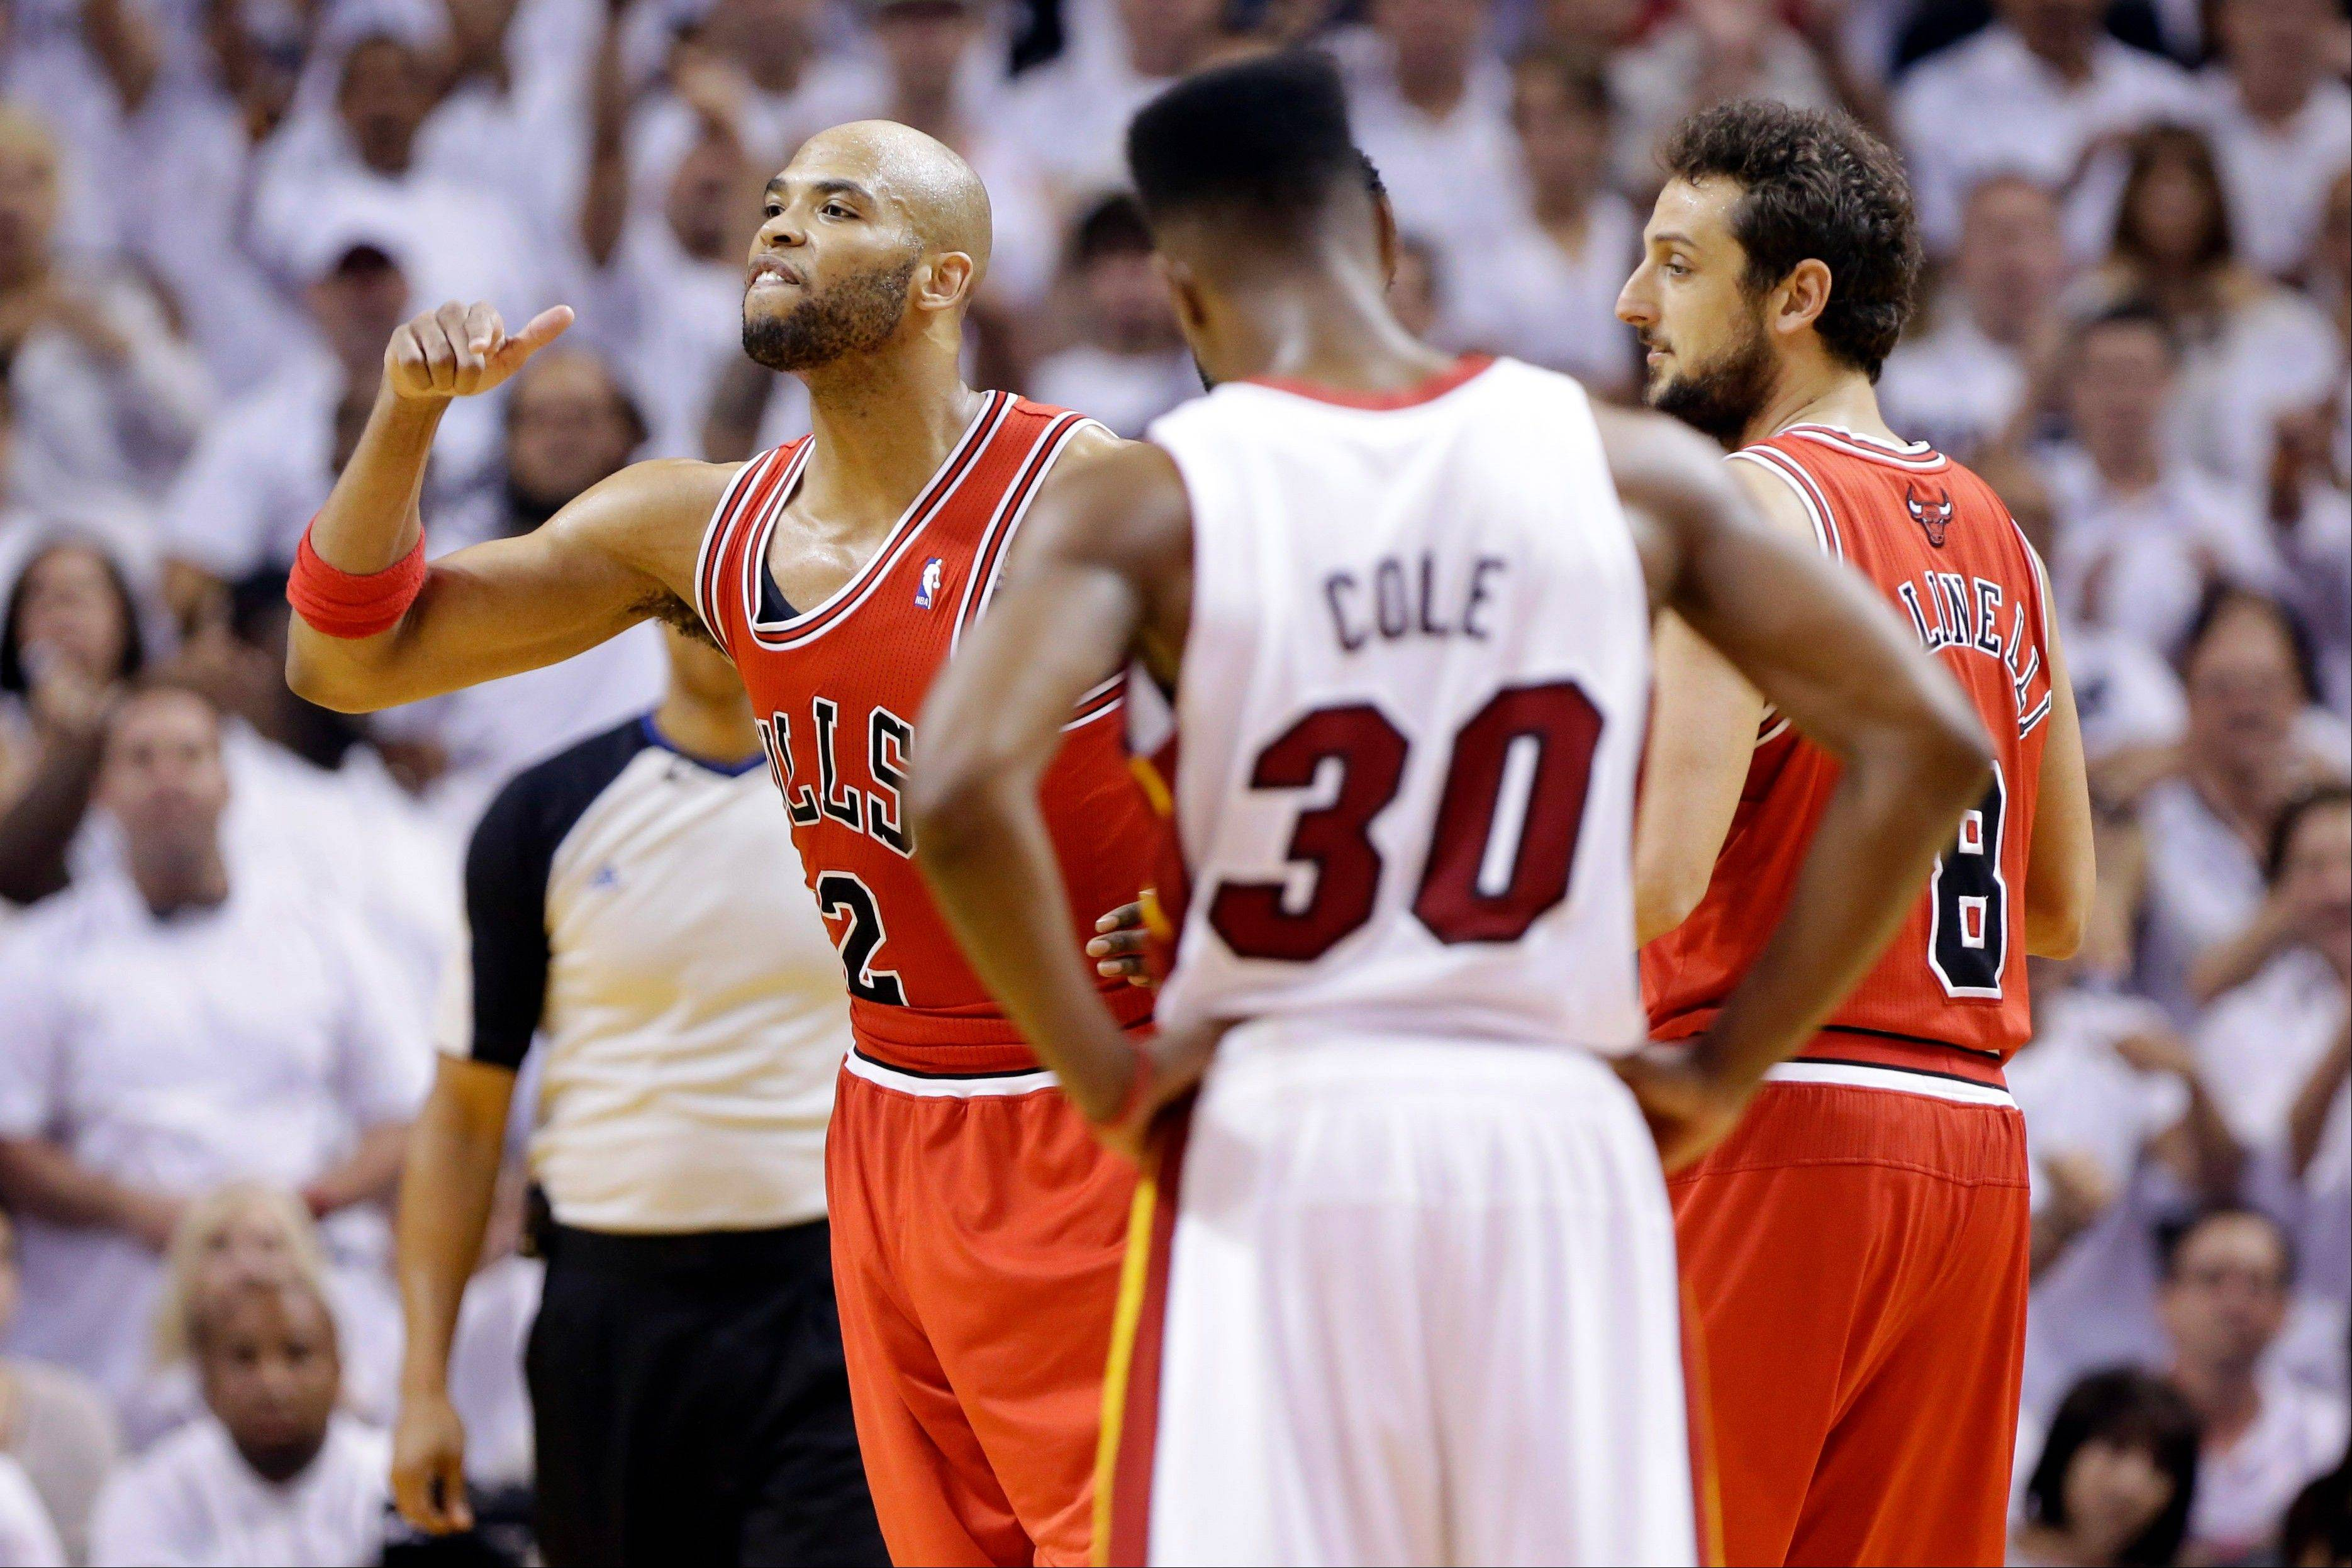 Bulls forward Taj Gibson, left, got emotional after he was ejected in Game 2 of the playoff series against the Miami Heat. Gibson was fined $25,000 for his outburst toward an official.